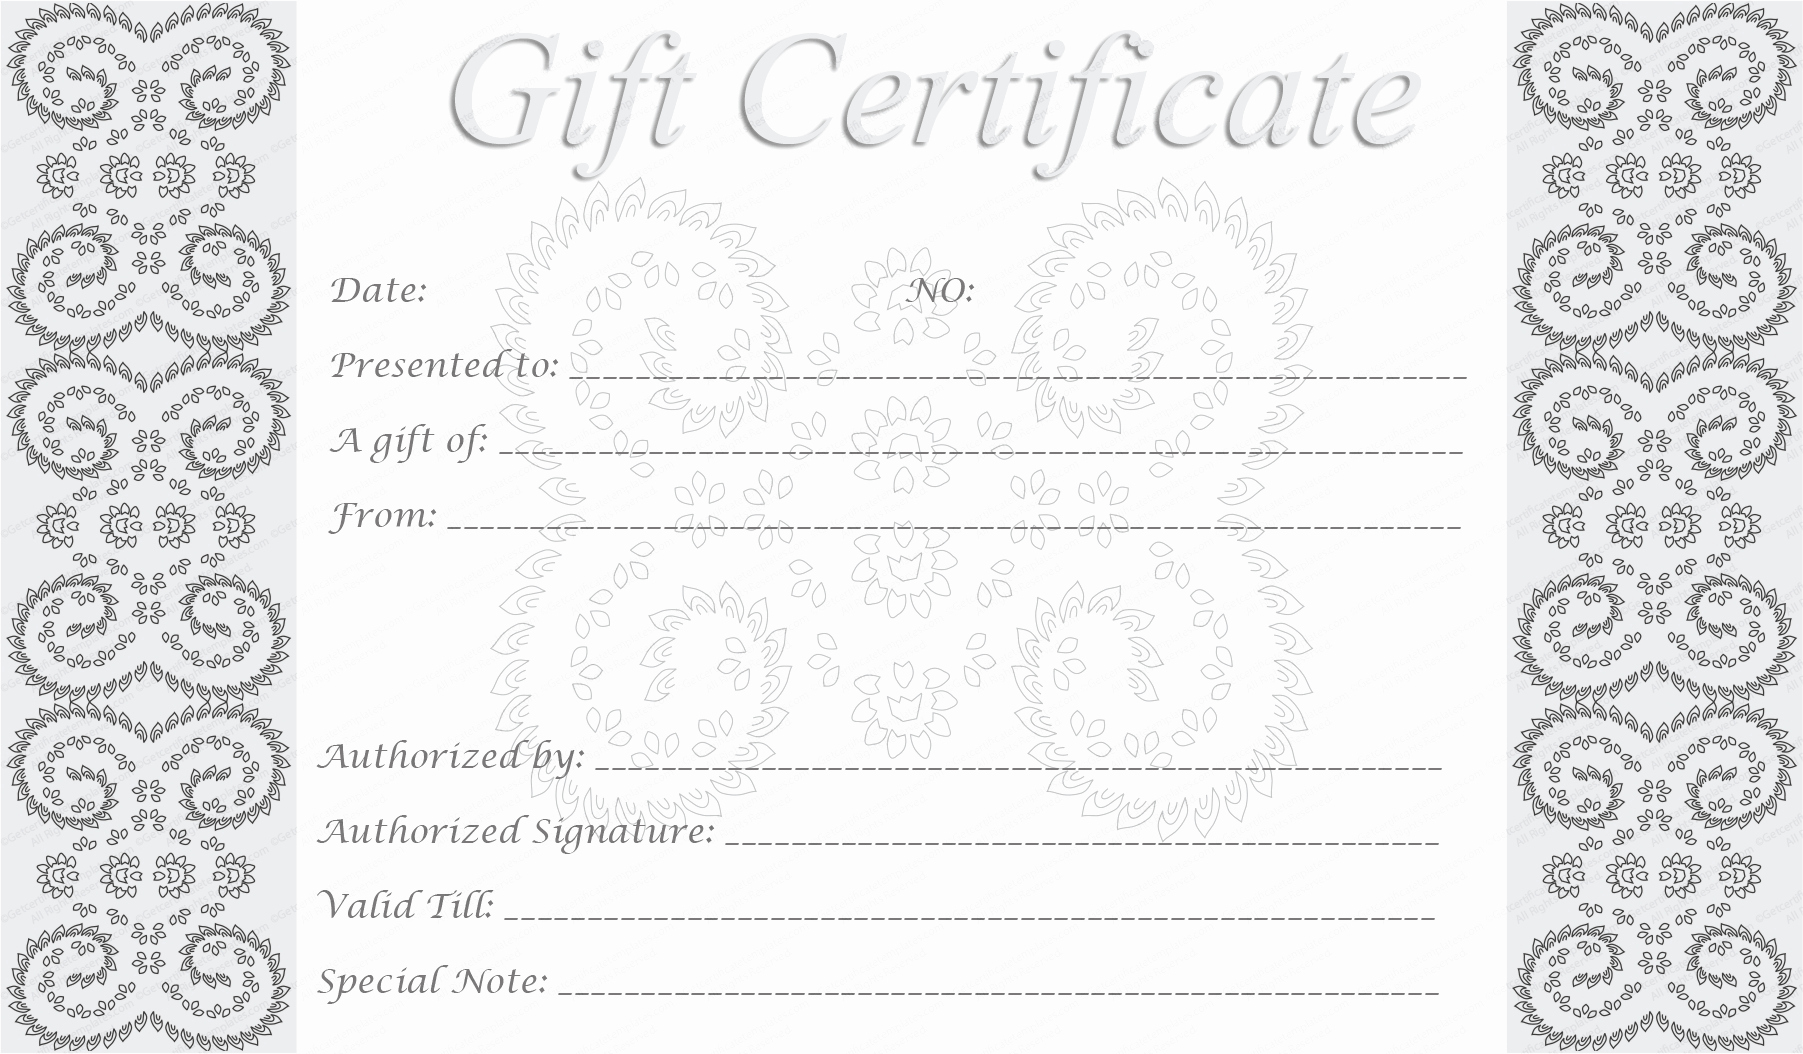 Free Downloadable Gift Certificate Template Inspirational Editable and Printable Silver Swirls Gift Certificate Template